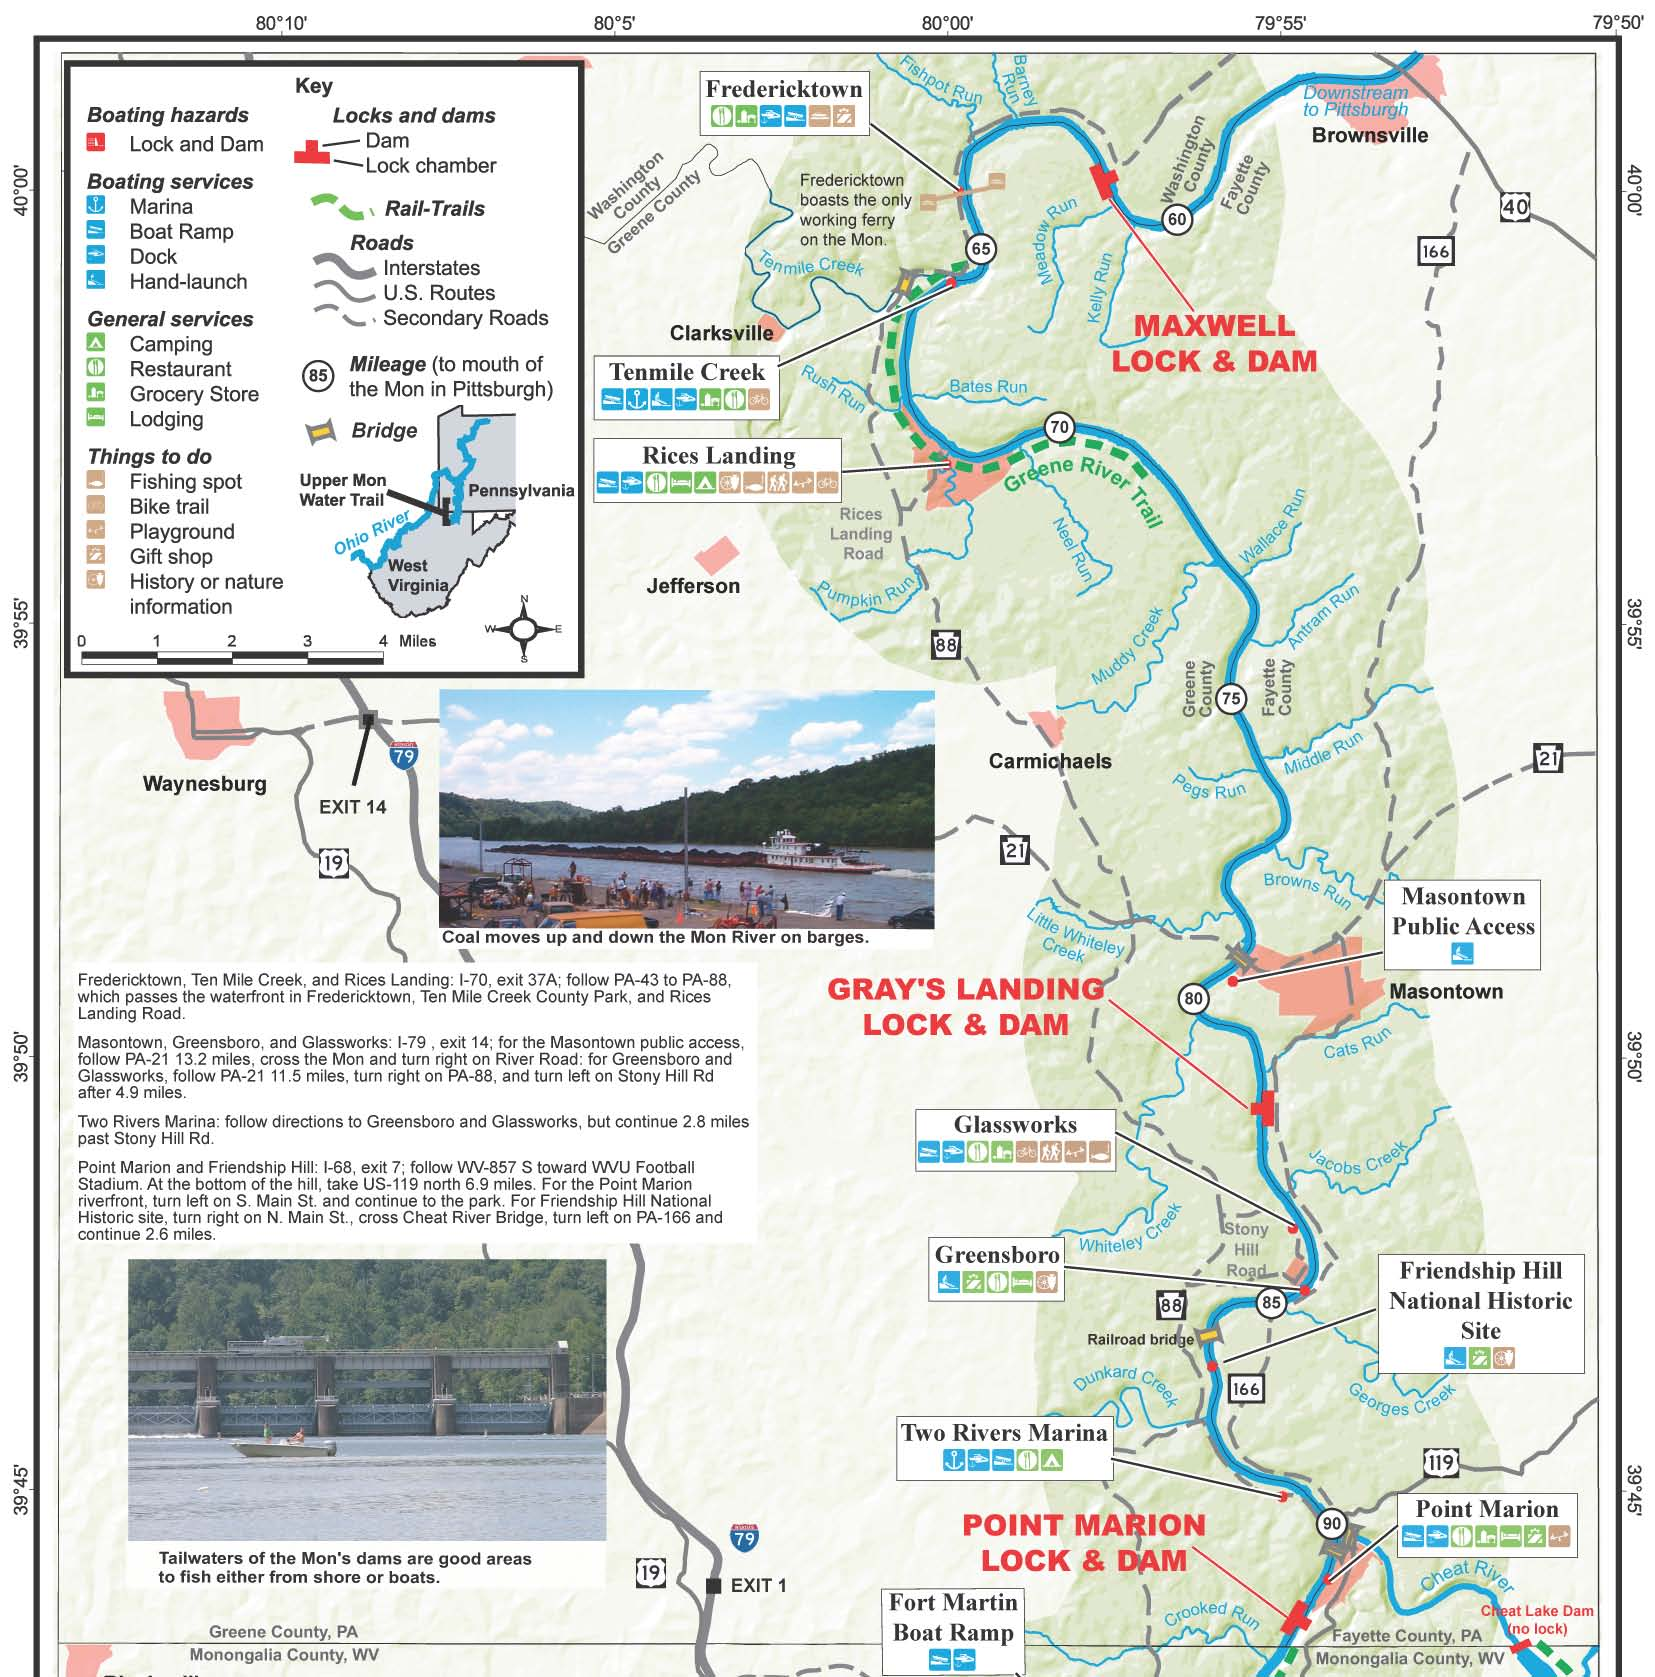 lehigh valley trail map with Watertrail on Walking Purchase Salisbury Trails additionally Info Links further Pennsylvania Map Rivers Cities together with Zoo Map h2hFH TFb8ug34oTg3dOD5xHaDQn9rwEpXm UeK67l8 together with The Pinnacle Trail Loop.